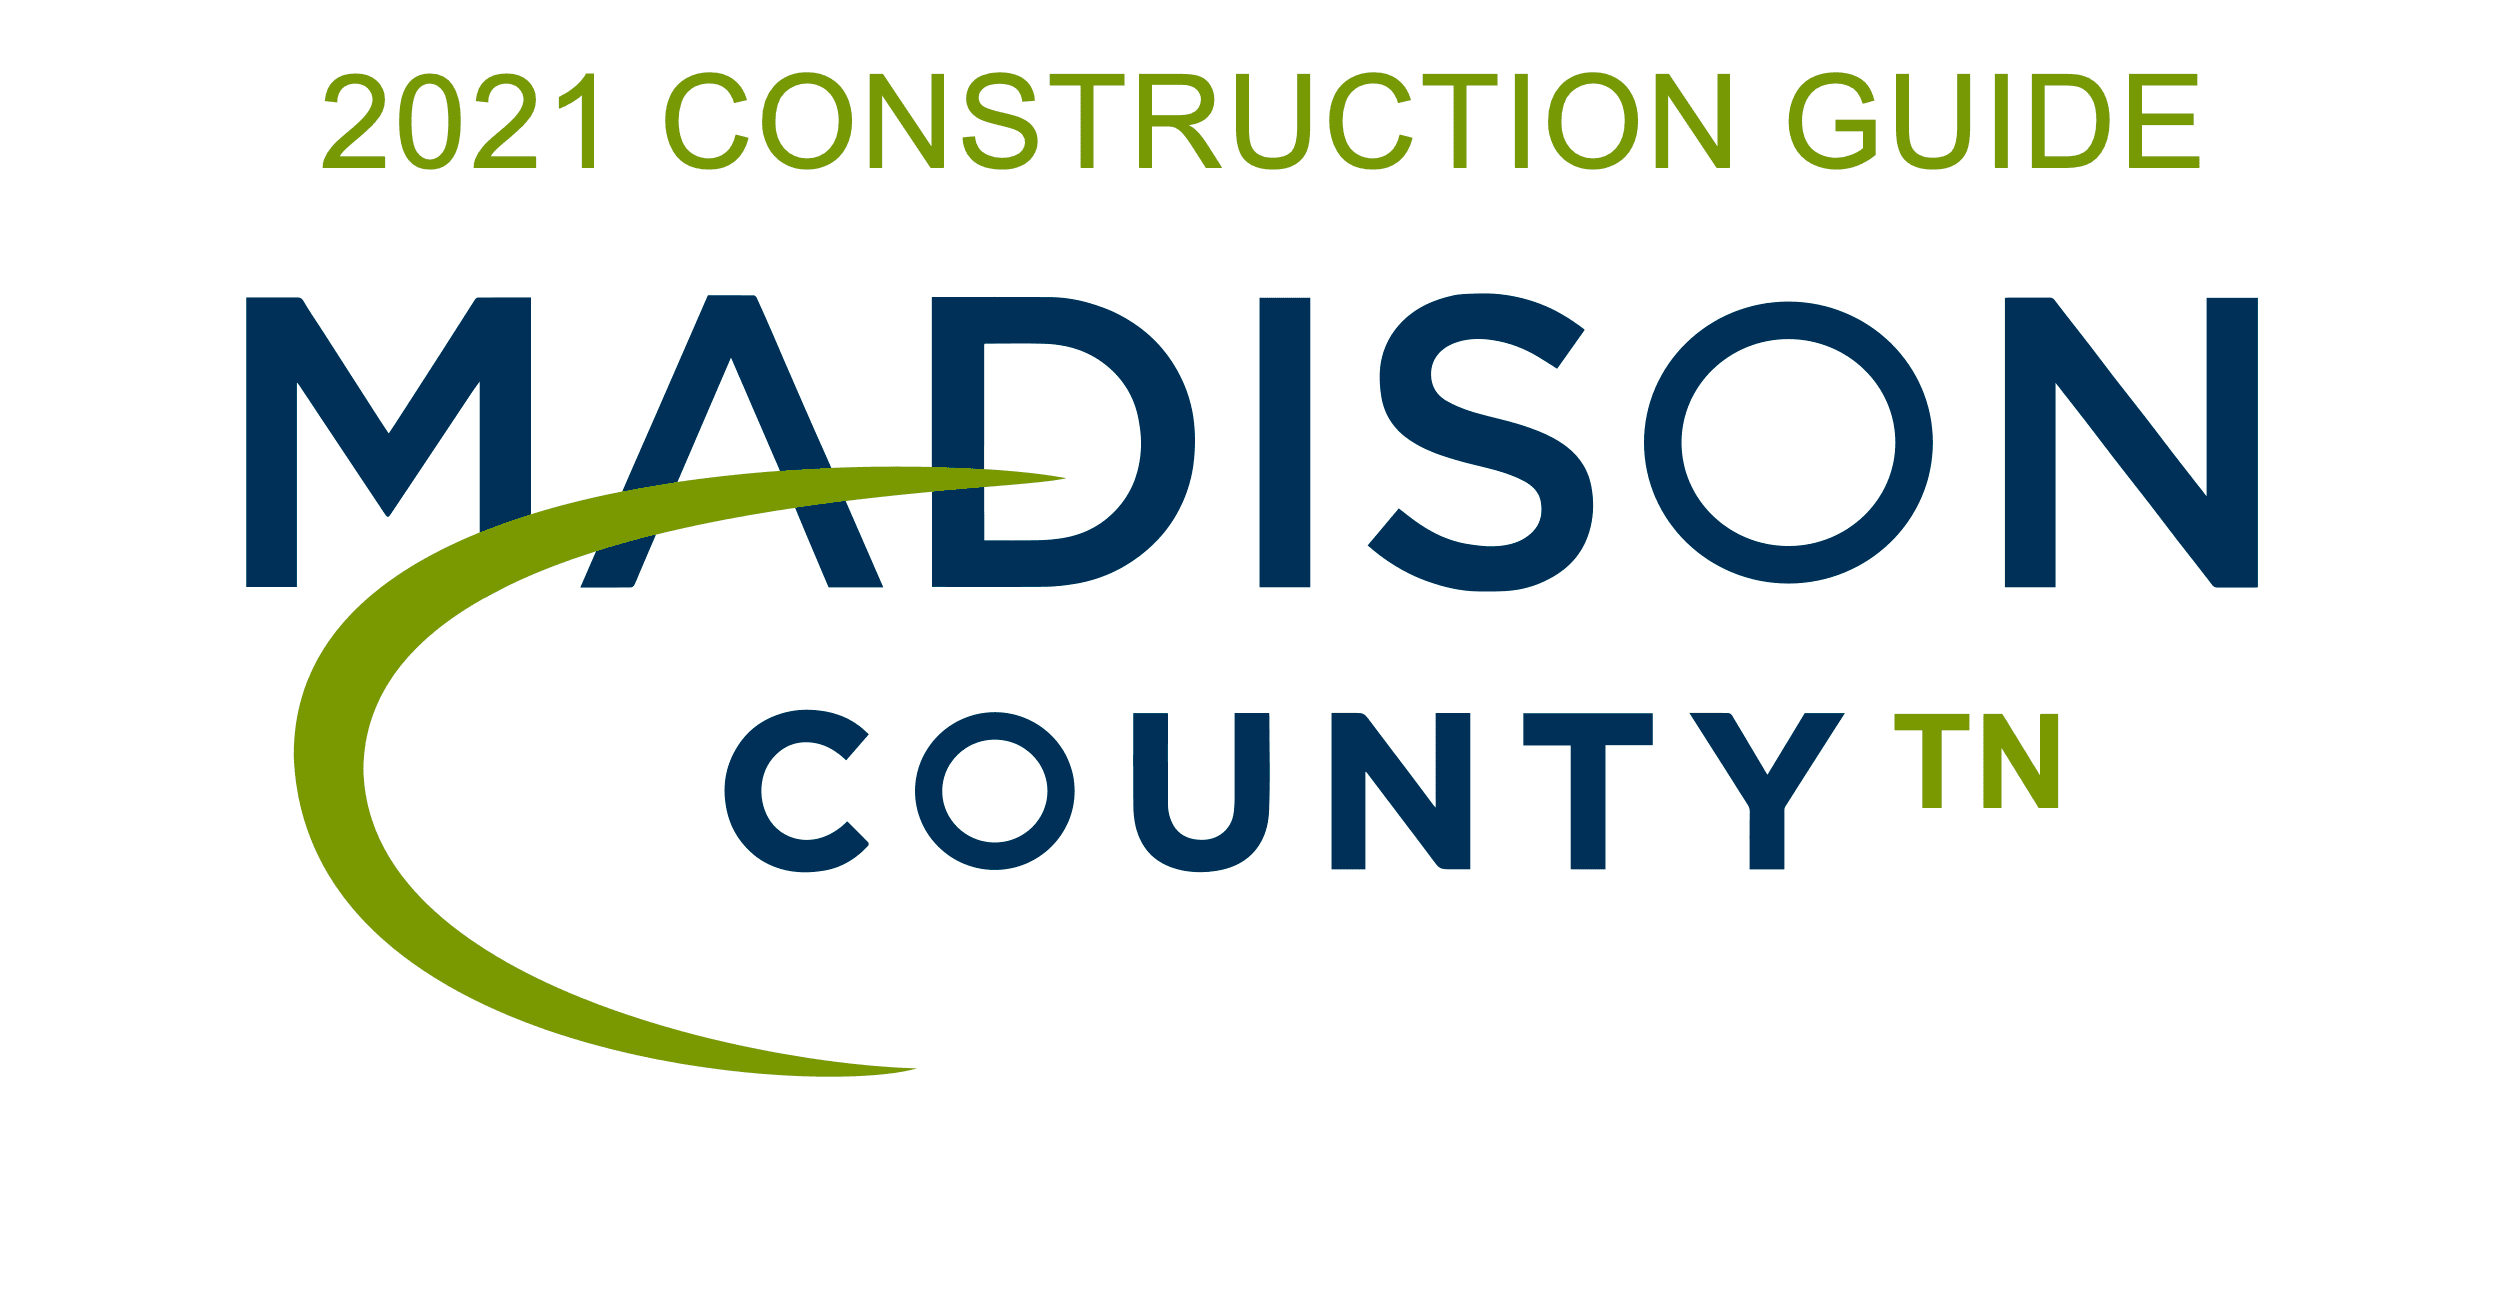 2021 CONSTRUCTION GUIDE LOGO Opens in new window